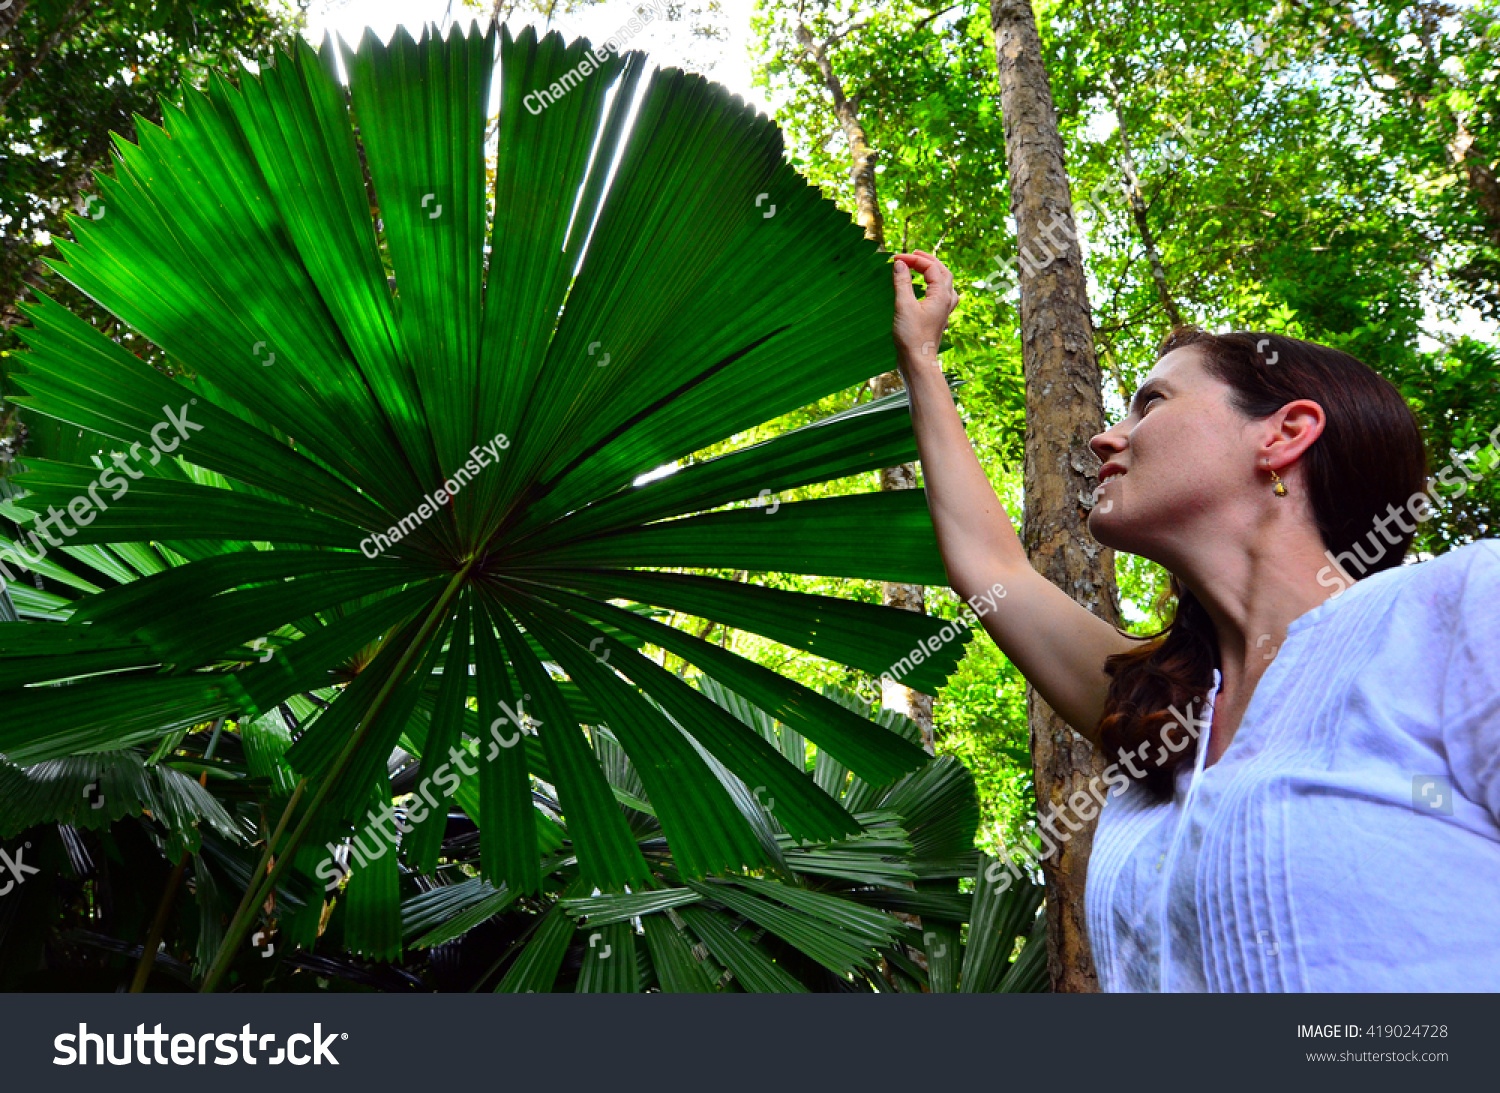 Fans taking pictures with cell phone behind barrier stock photo - Young Woman Touches An Australian Fan Palm Leaf In Daintree National Park In The Tropical North